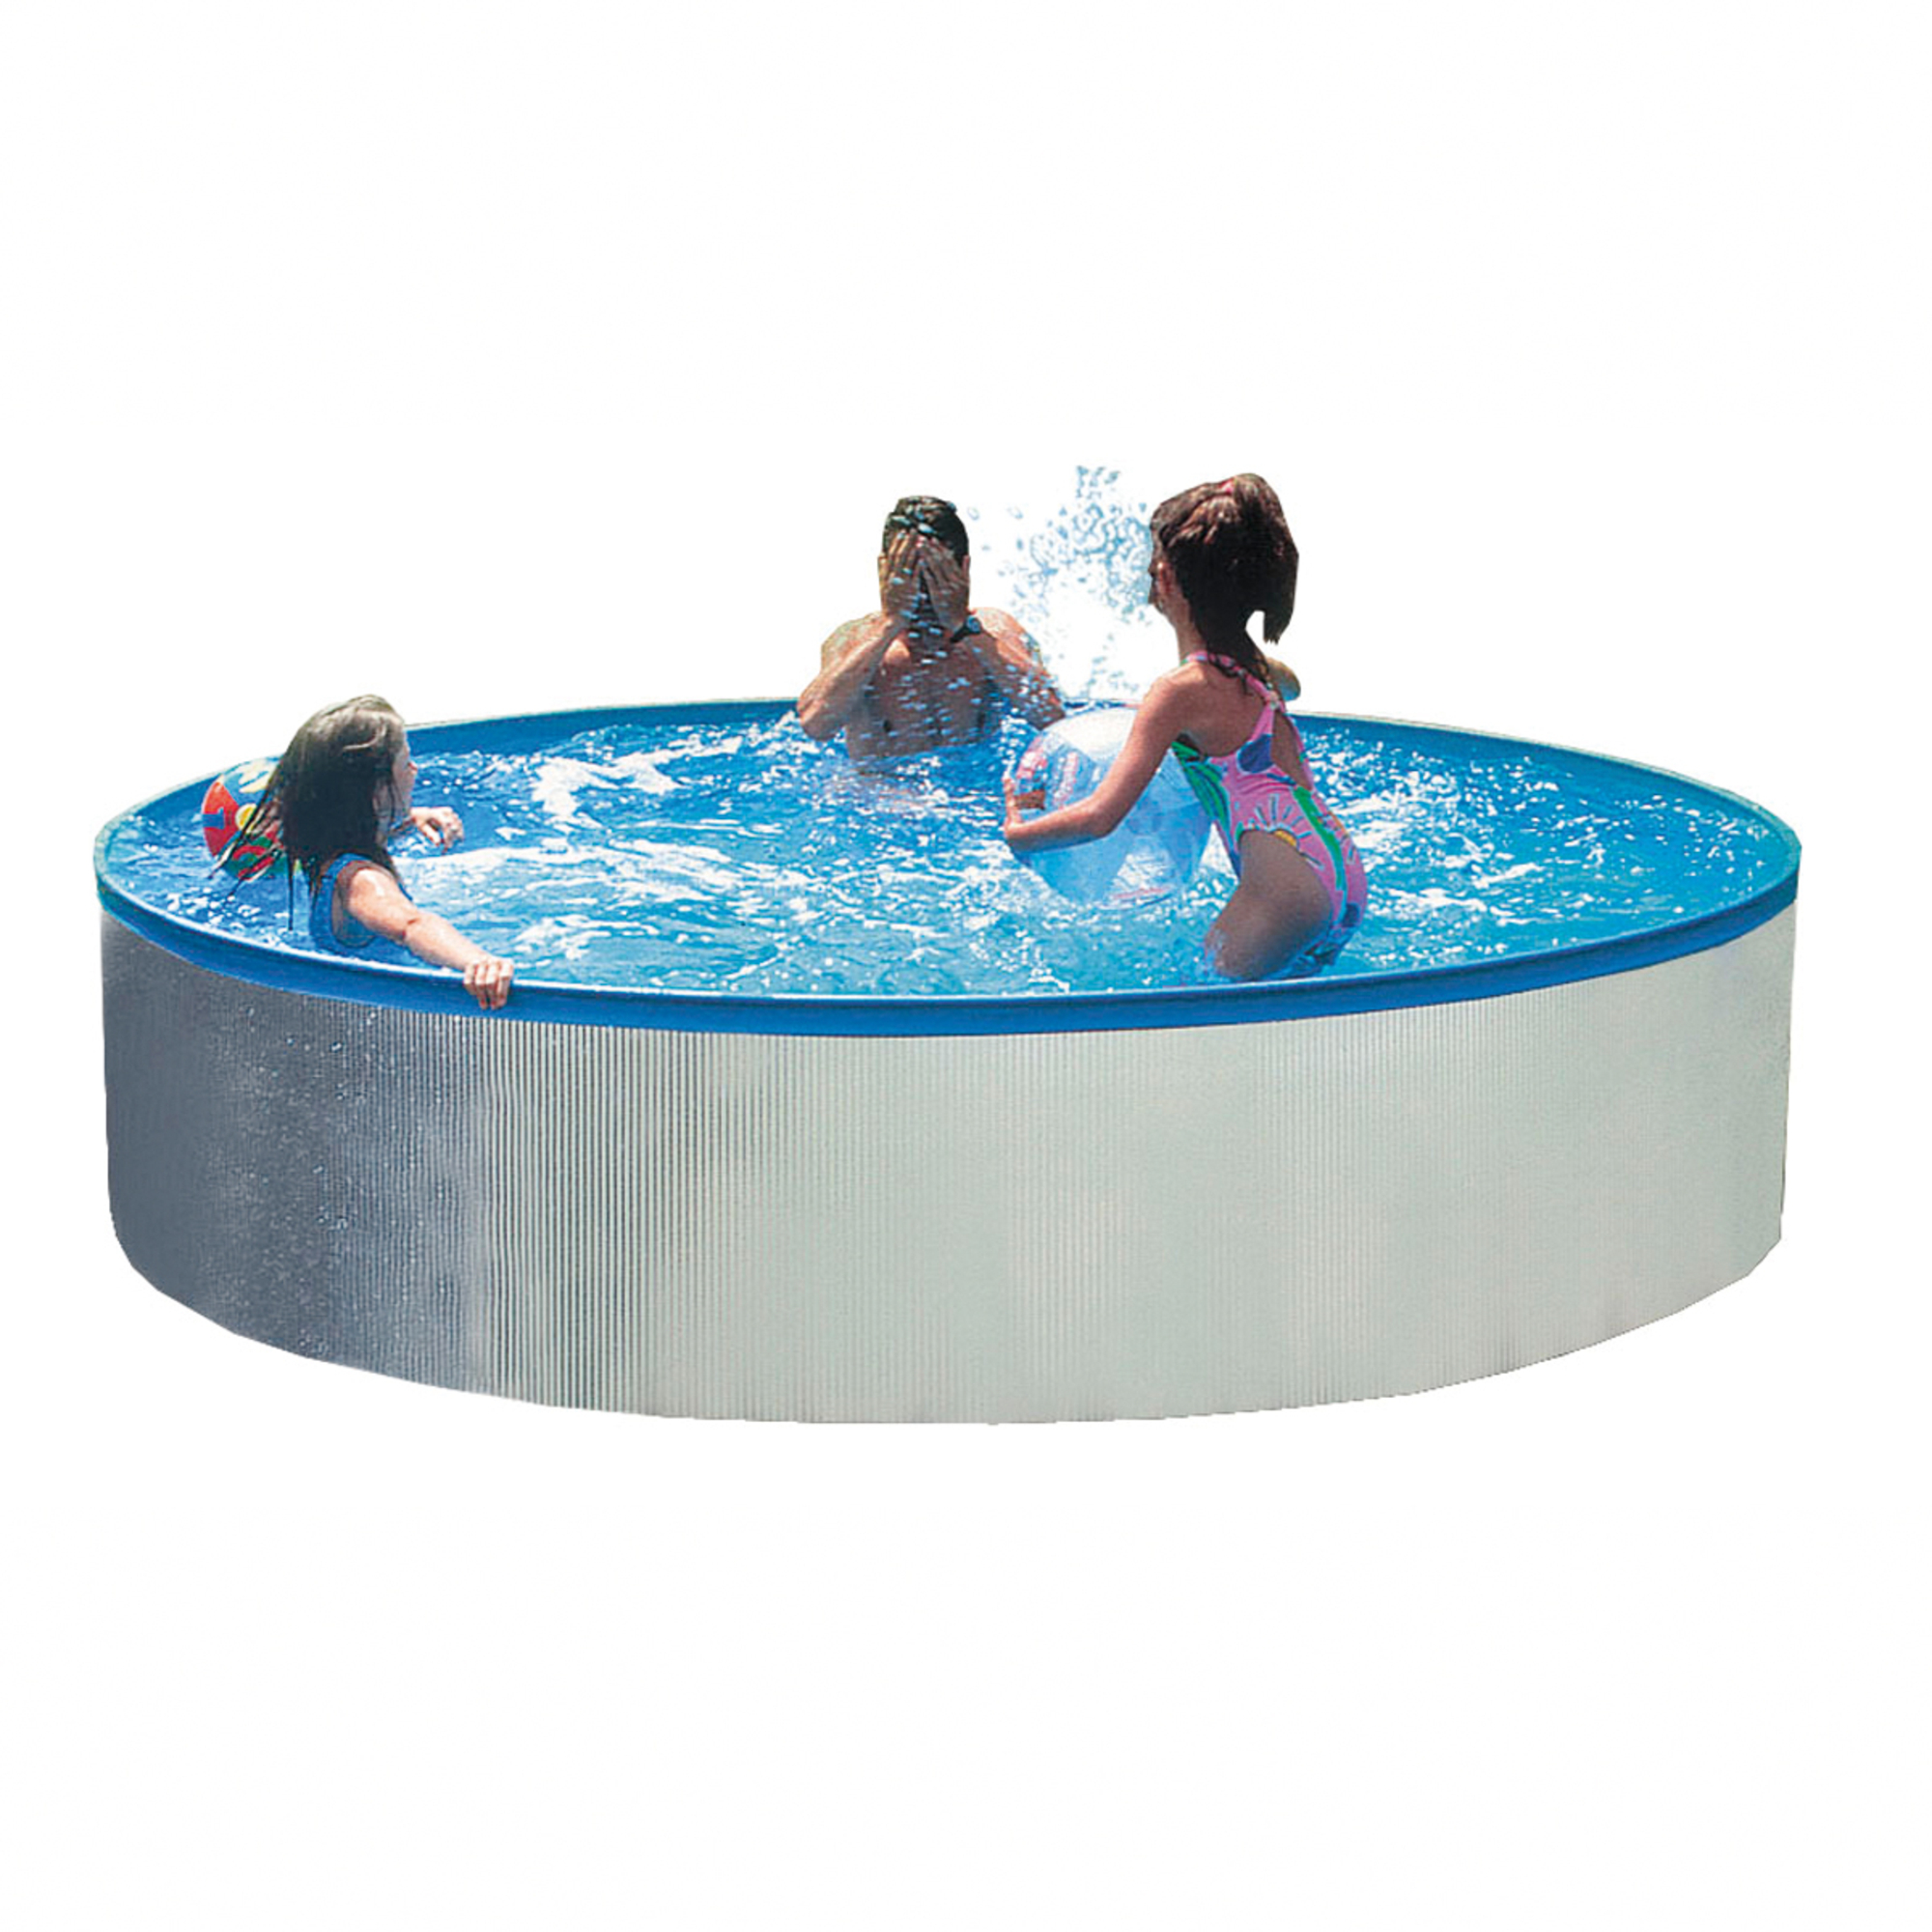 Trigano piscine junior mtal 300 x 060 m solde store for Piscine acier solde